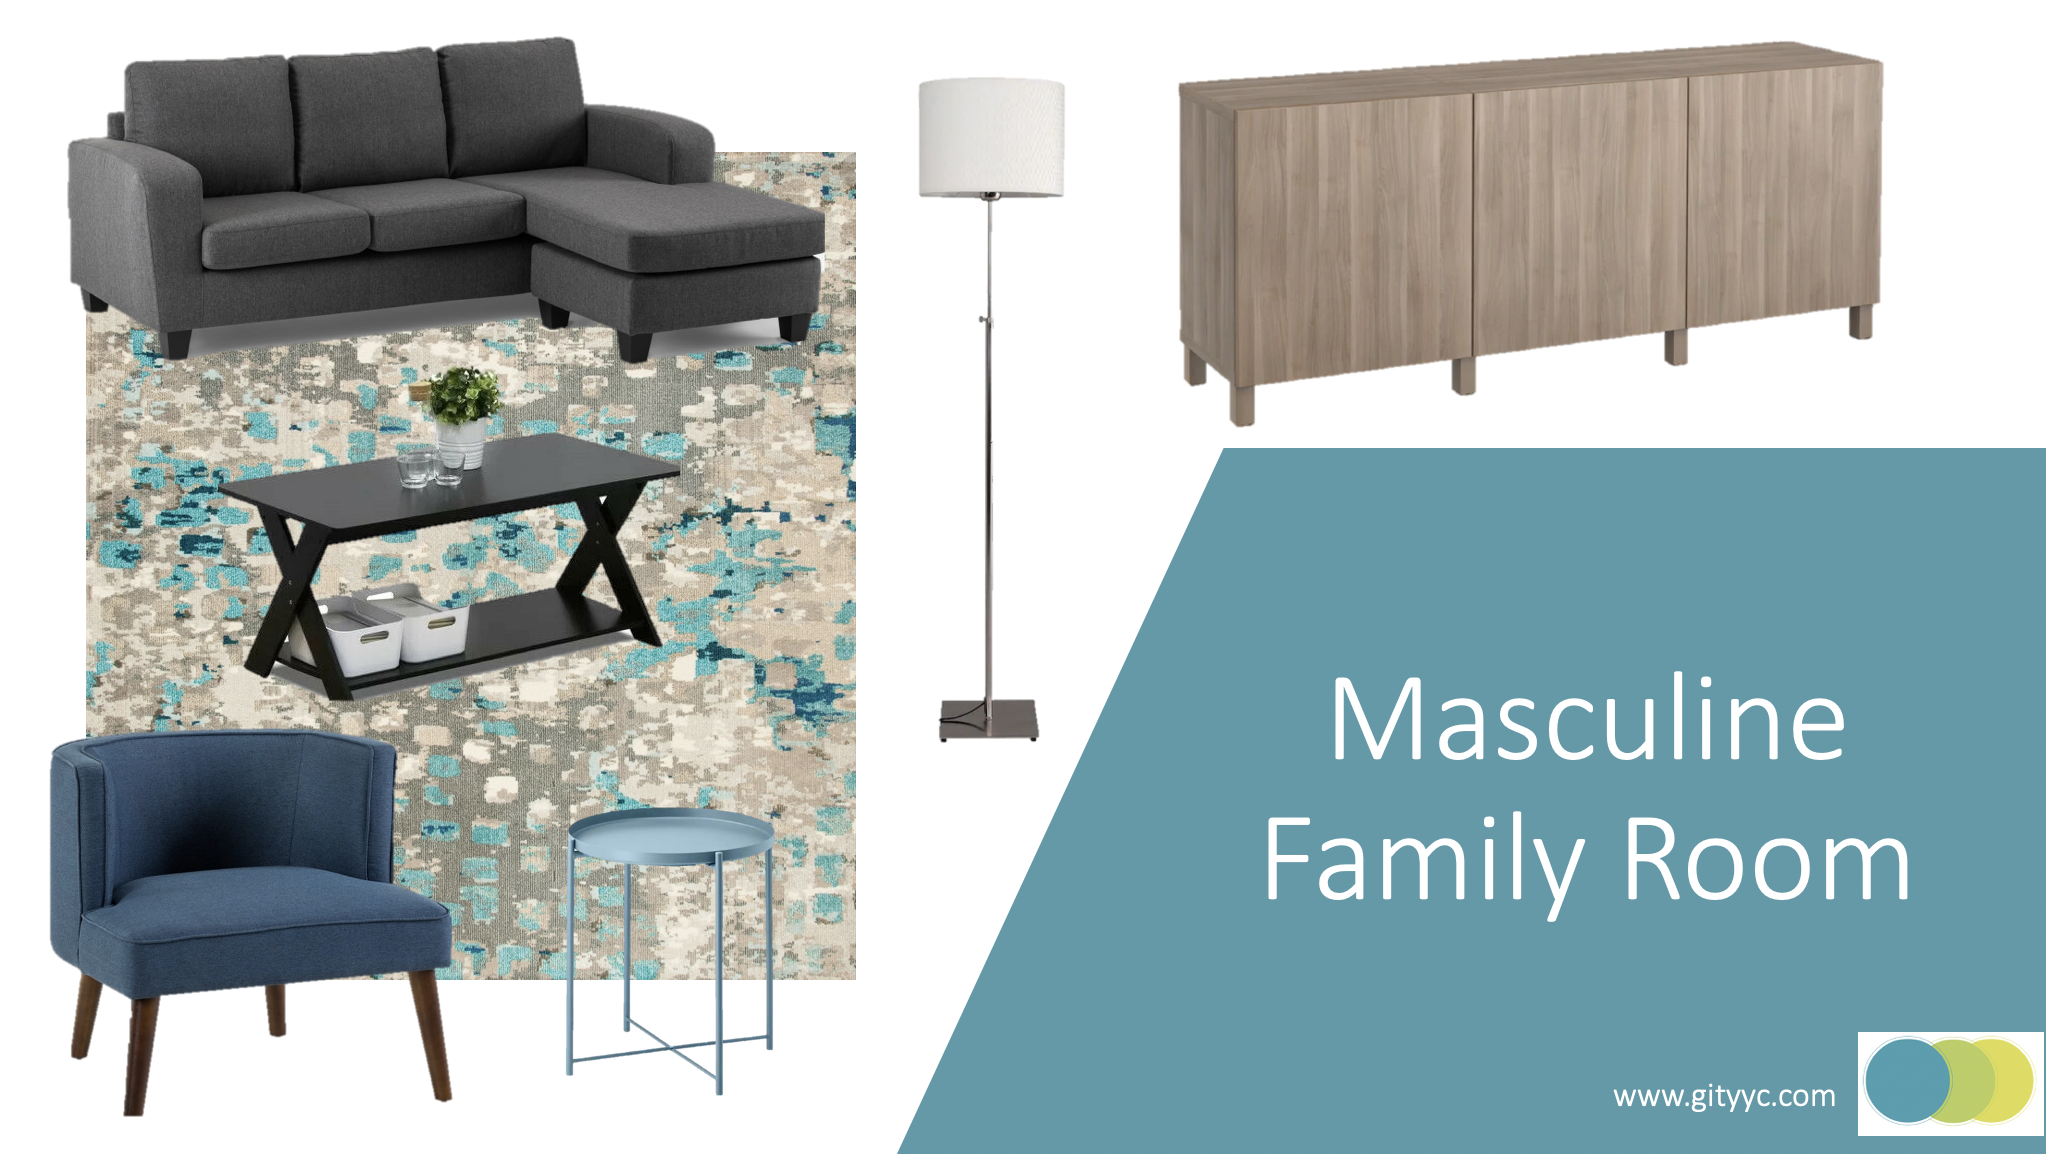 Masculine Family Room.png